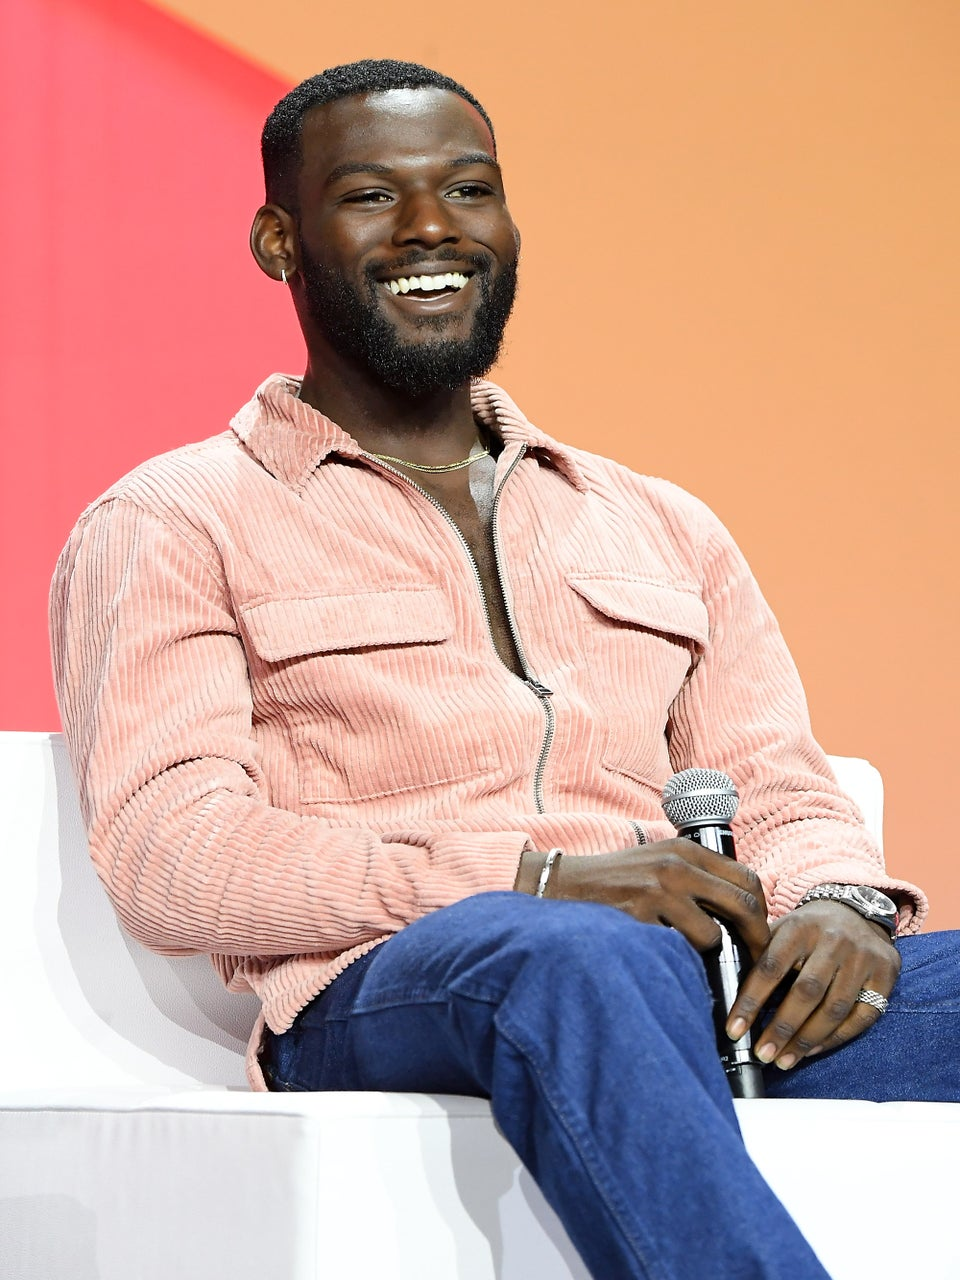 He's Fine and Smart! How Kofi Siriboe Says He's Learning To Make The Money and Not Let It Make Him